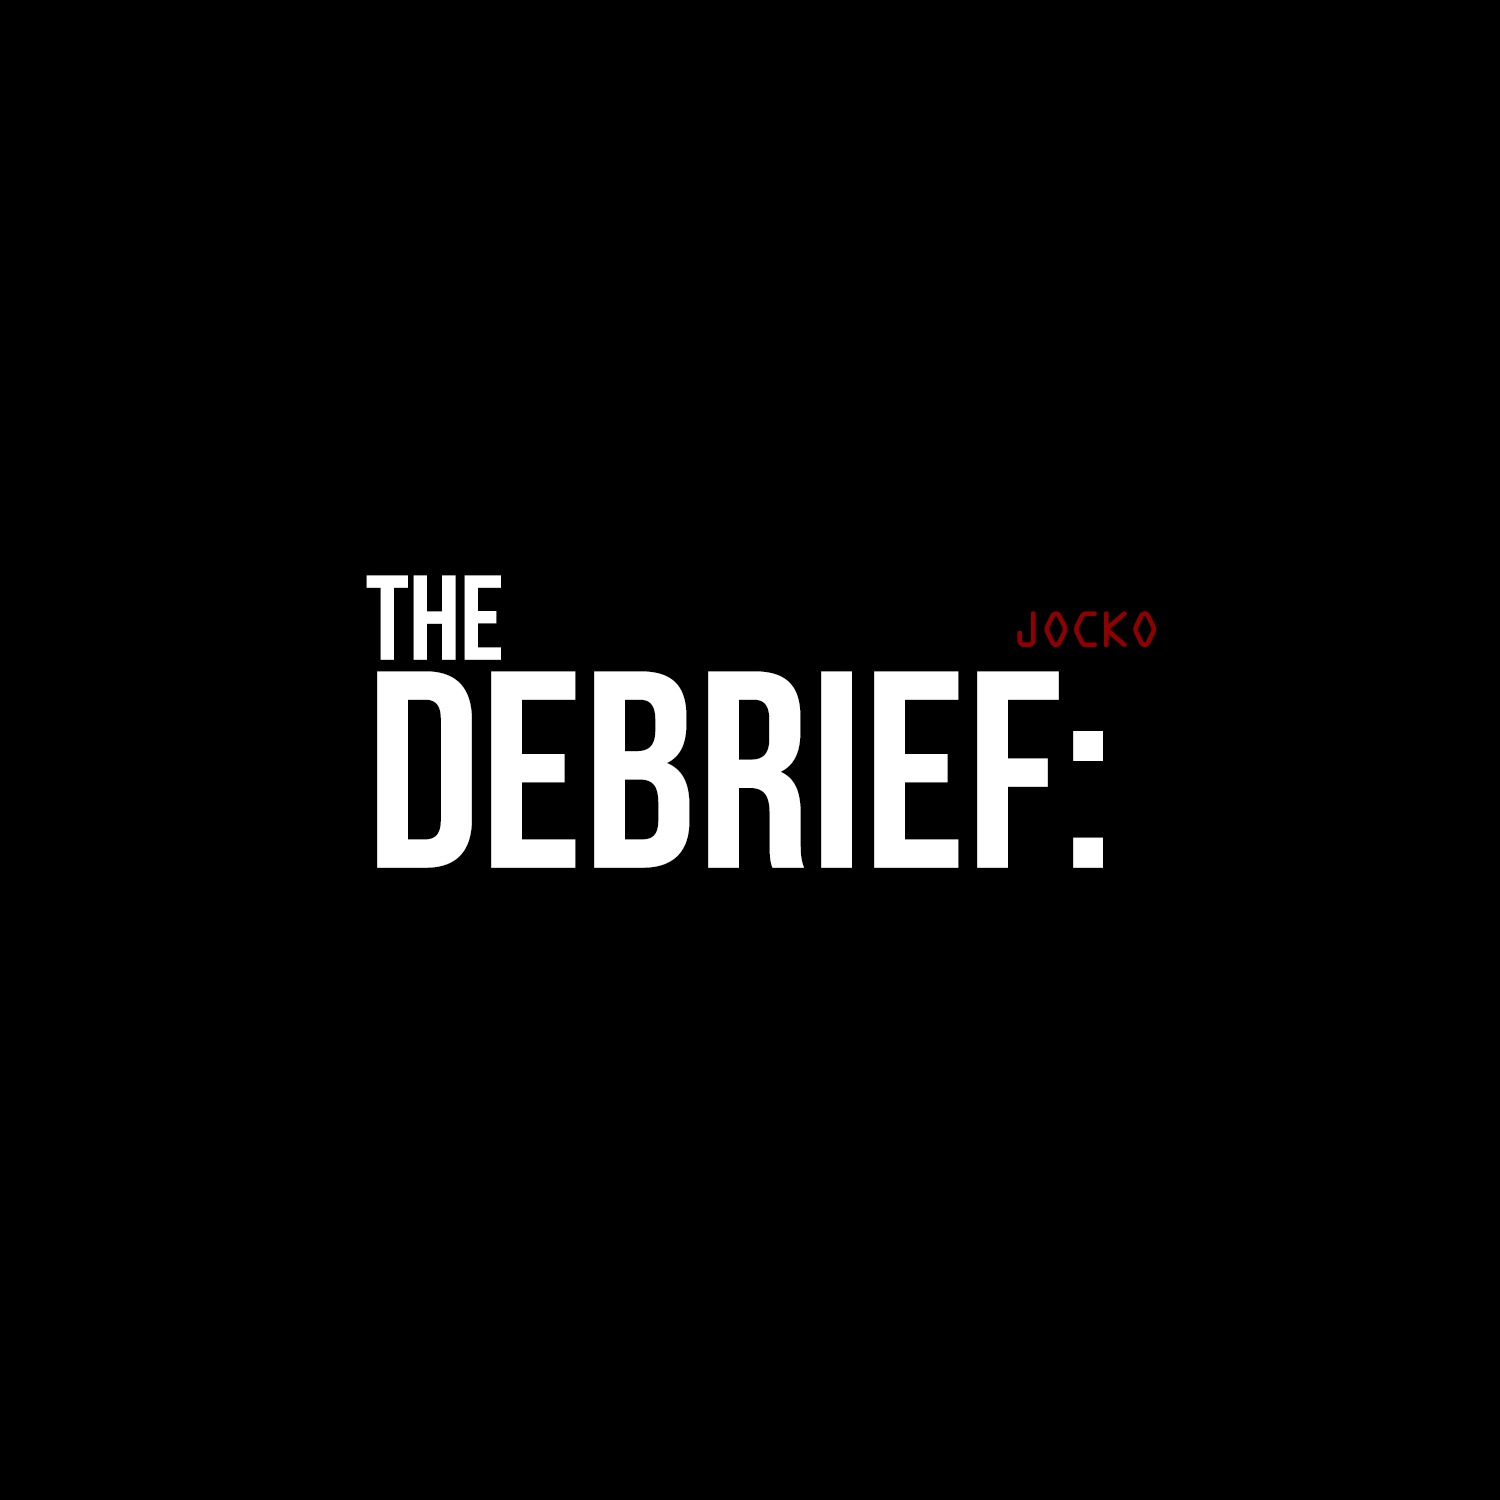 The Debrief w/ Jocko and Dave Berke #18: How to Overcome The Struggles of Decentralized Command